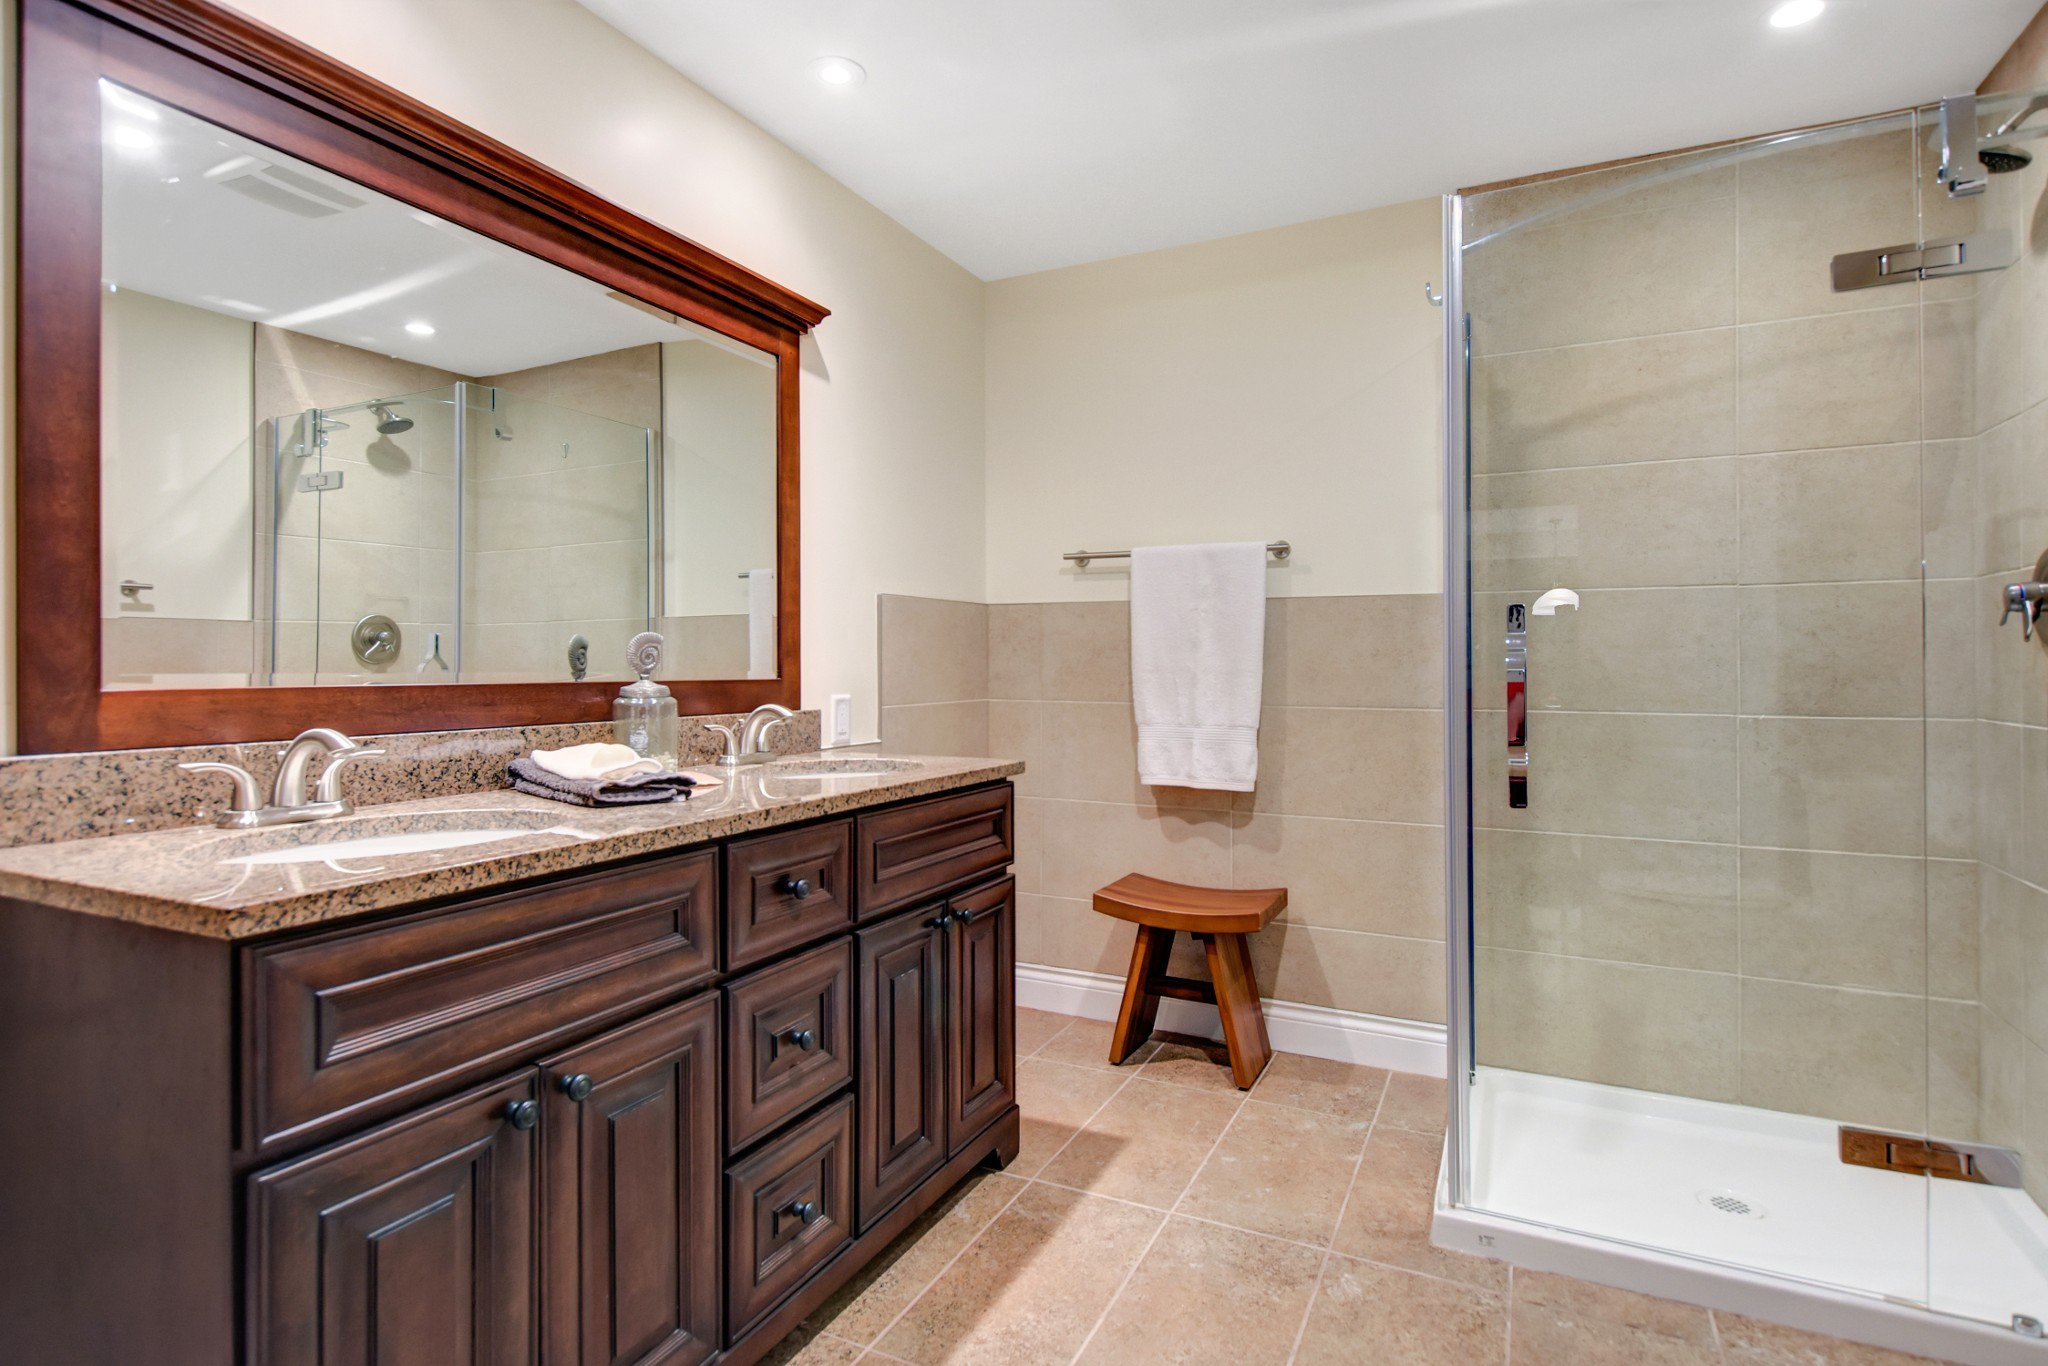 Photo 55: Photos: 1490 REINDEER WAY.: Greely House for sale (Ottawa)  : MLS®# 1109530